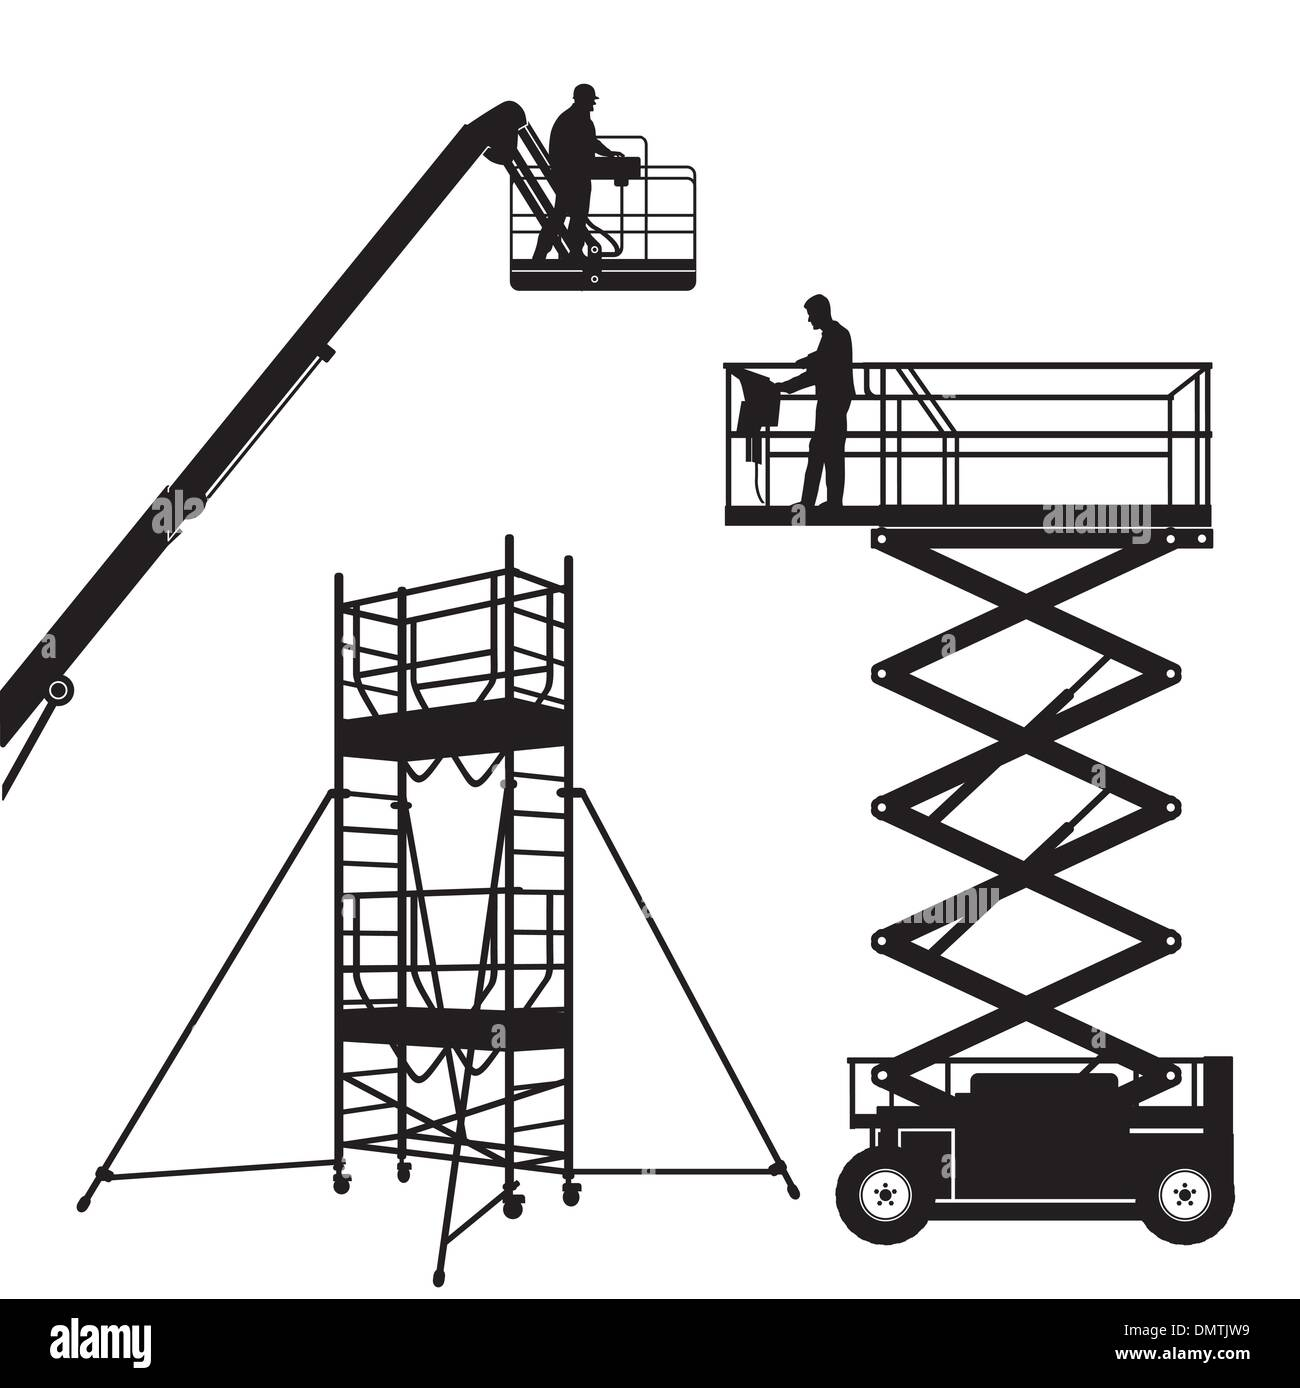 Lift and scaffolding - Stock Vector